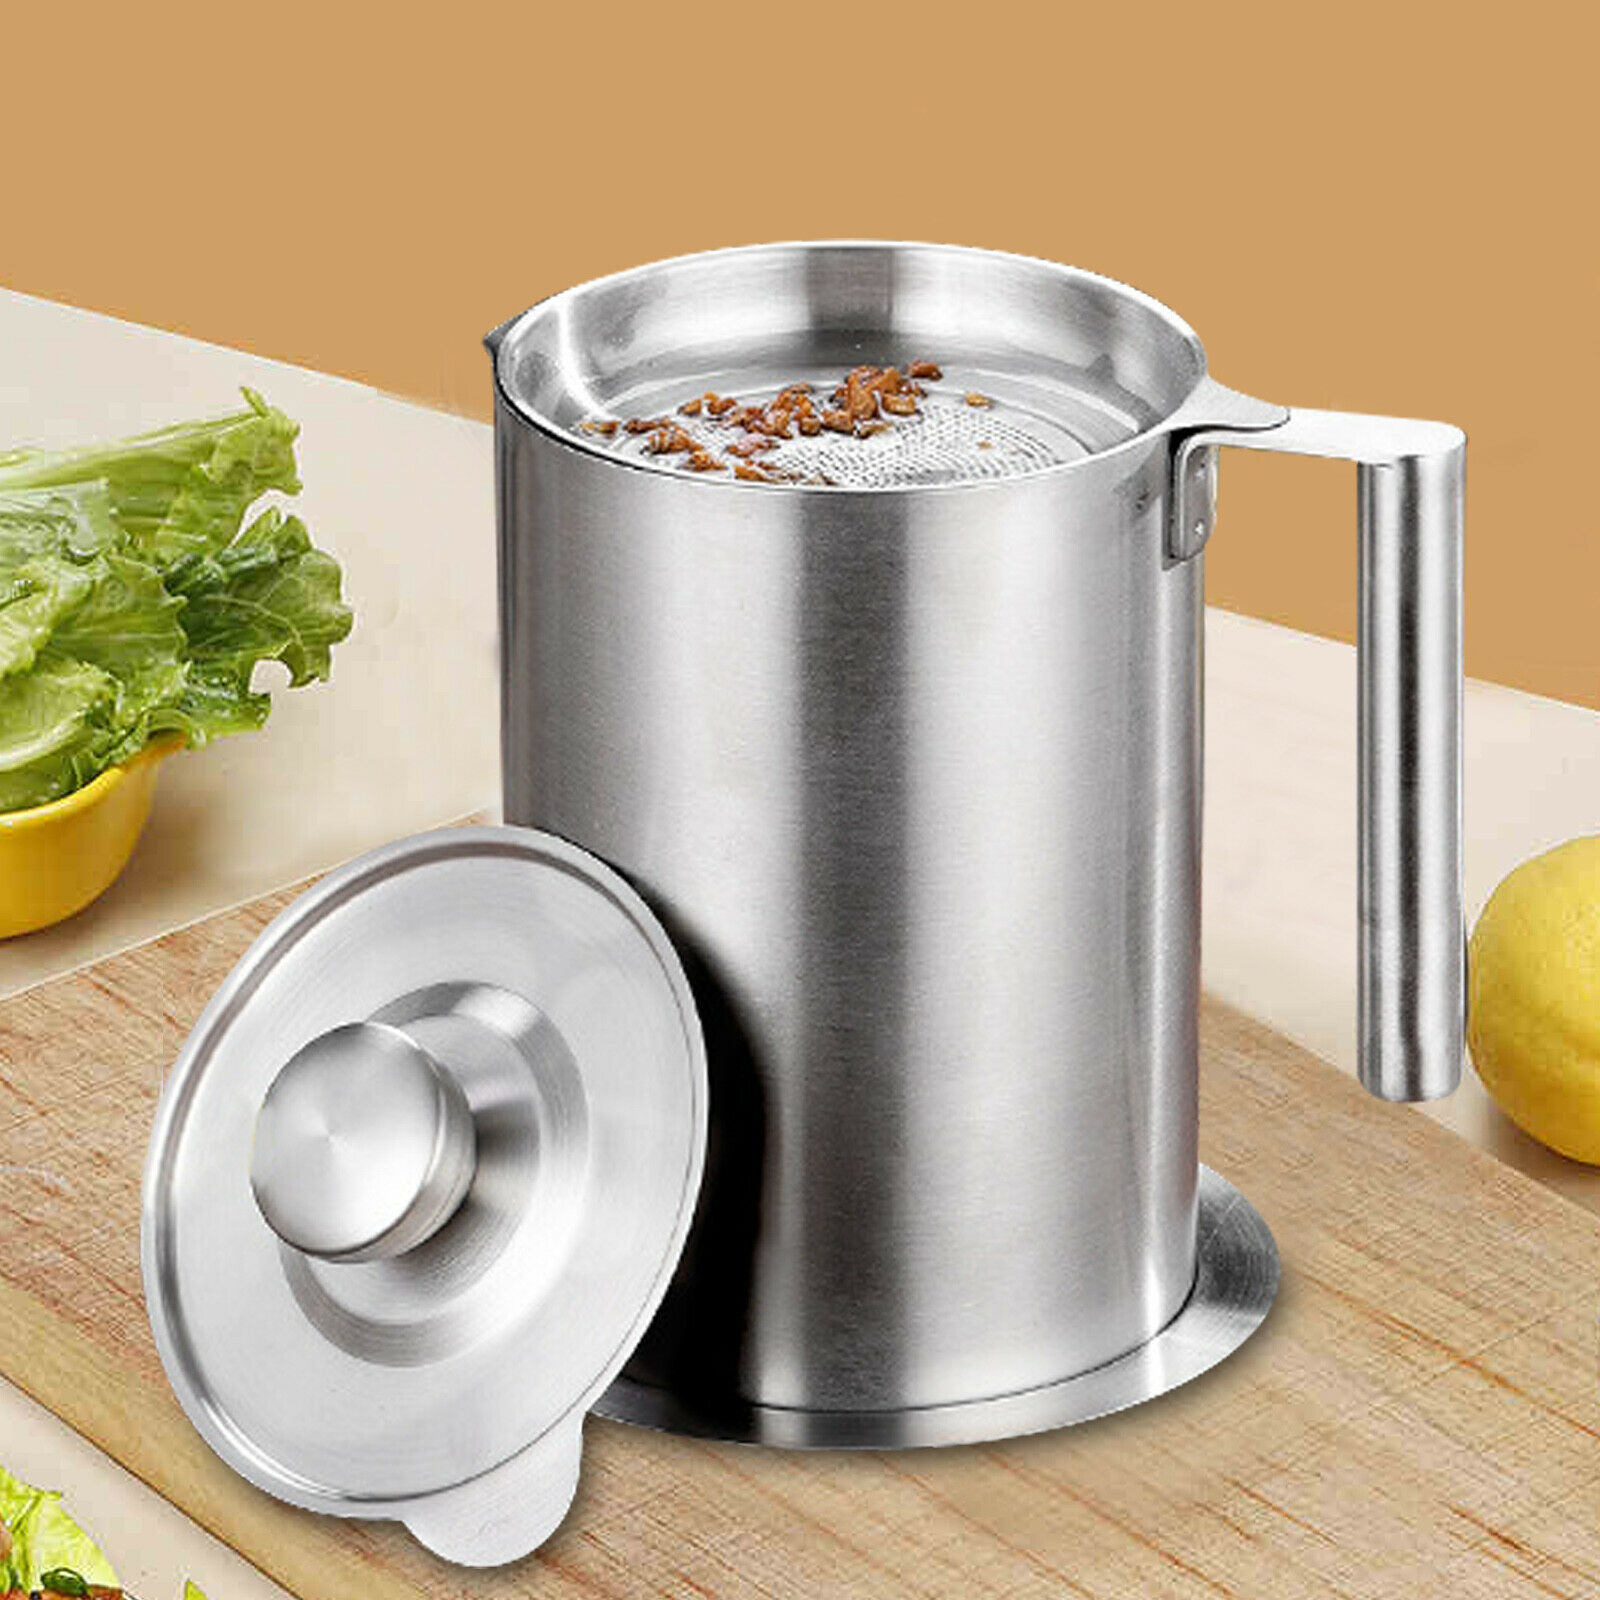 24//32//48oz Stainless Steel Oil Filter Pot Cooking Soup Grease Strainer